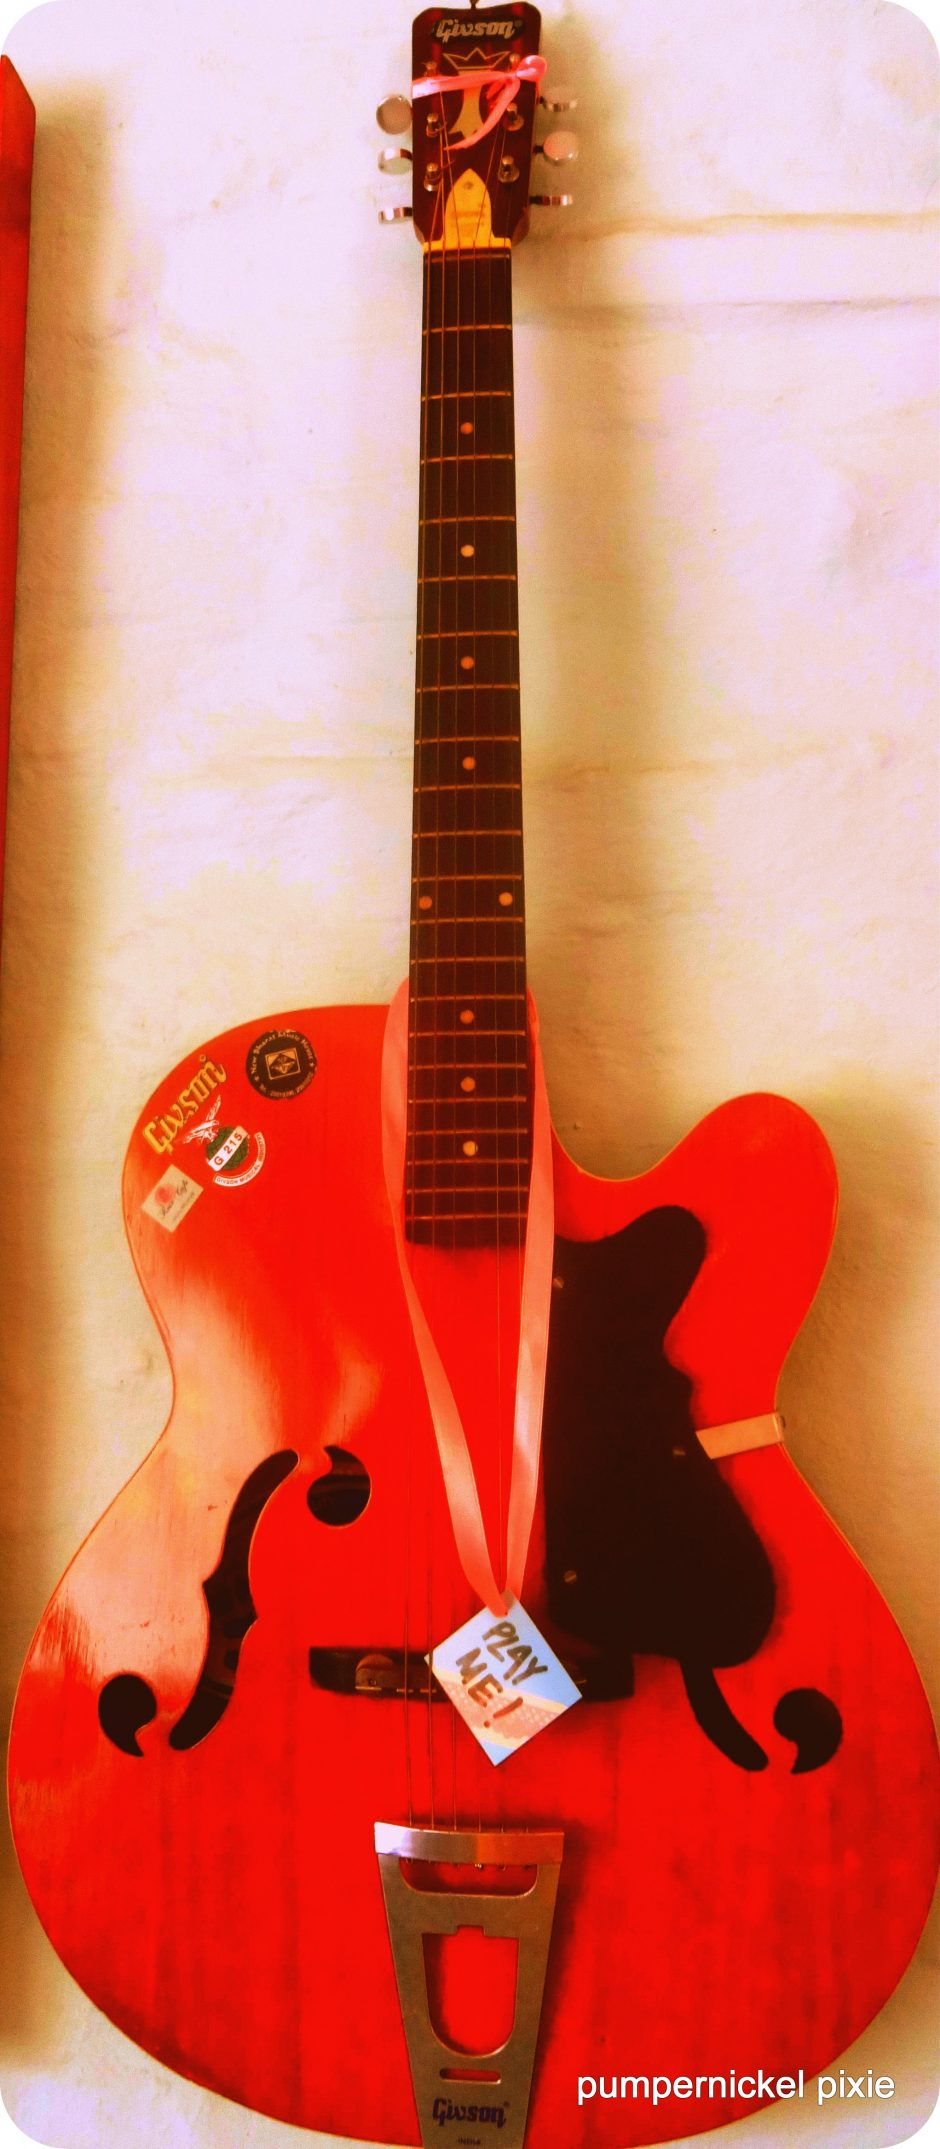 music guitar one week one photo music photography on pumpernickel pixie